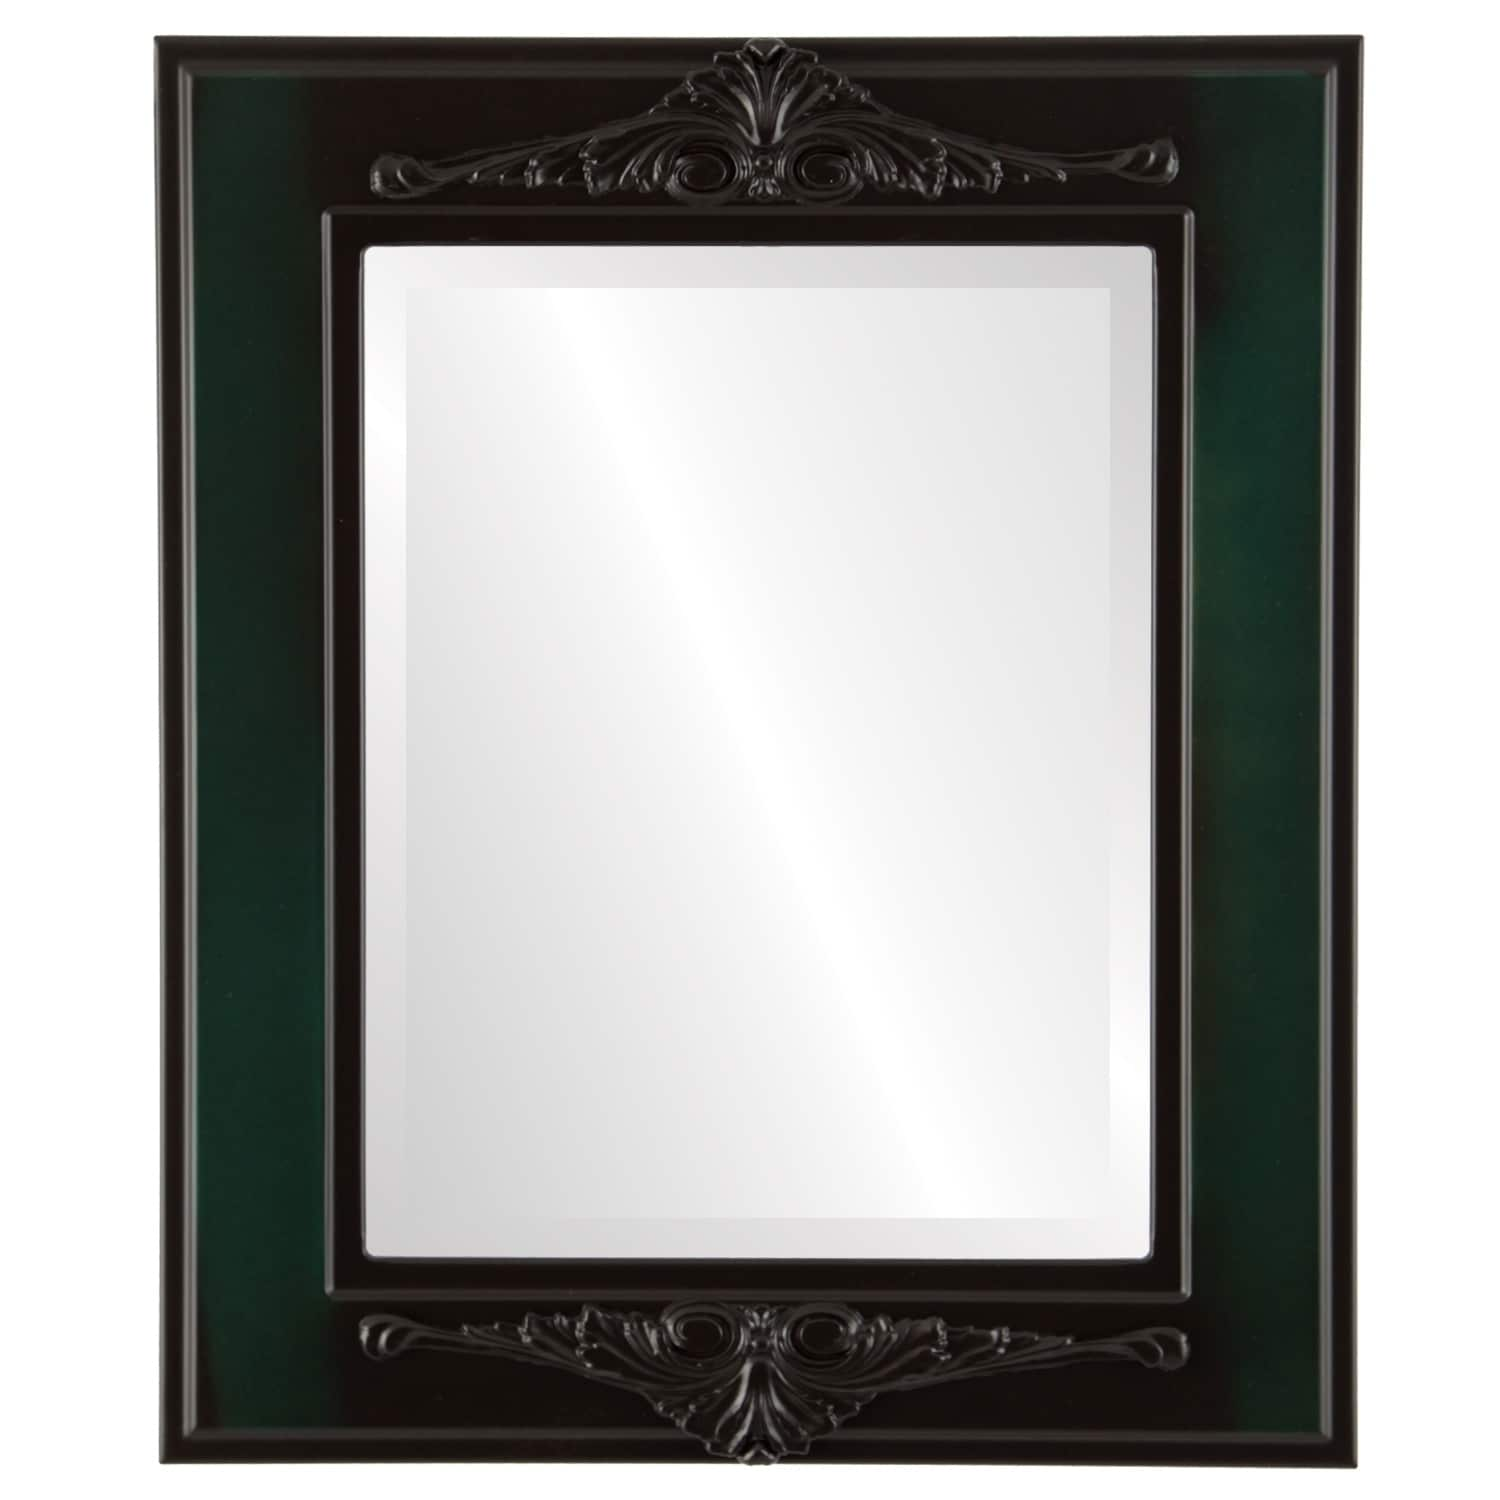 Ramino Framed Rectangle Mirror in Hunter Green - Green/Brown (25x35 - Medium (15-32 high))